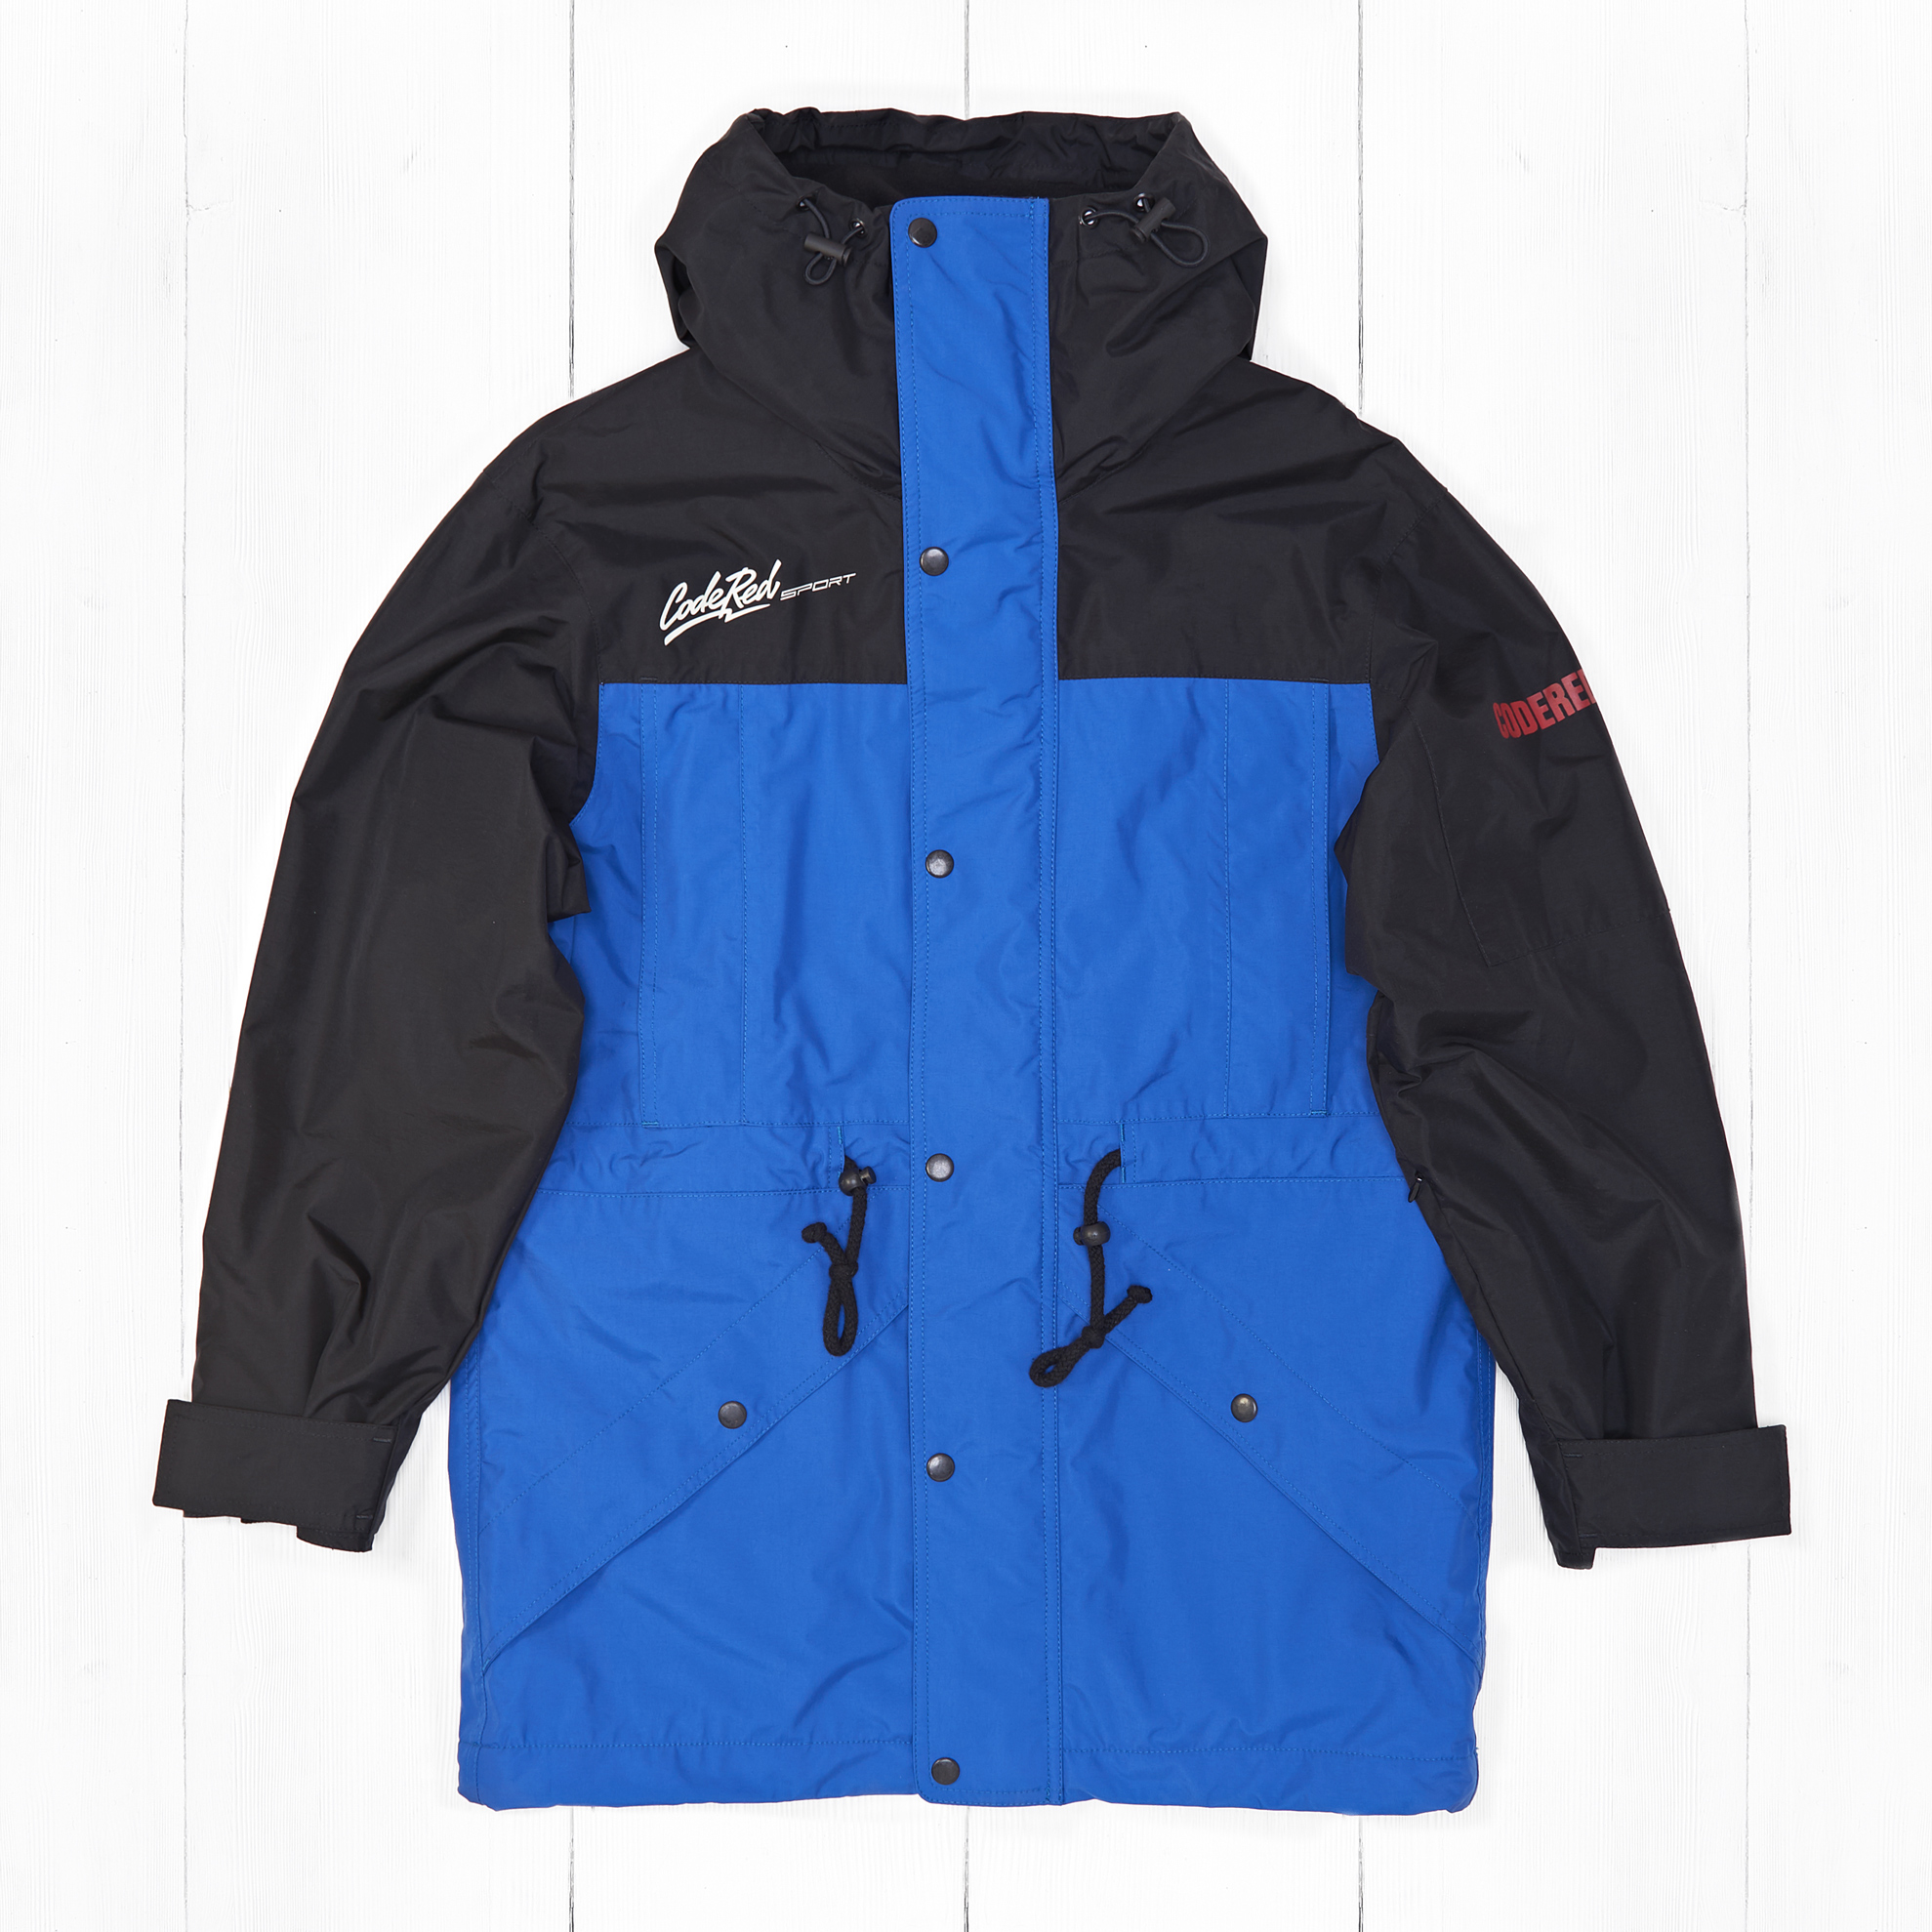 Куртка CodeRed Sport LEGACY Black/Cornflower